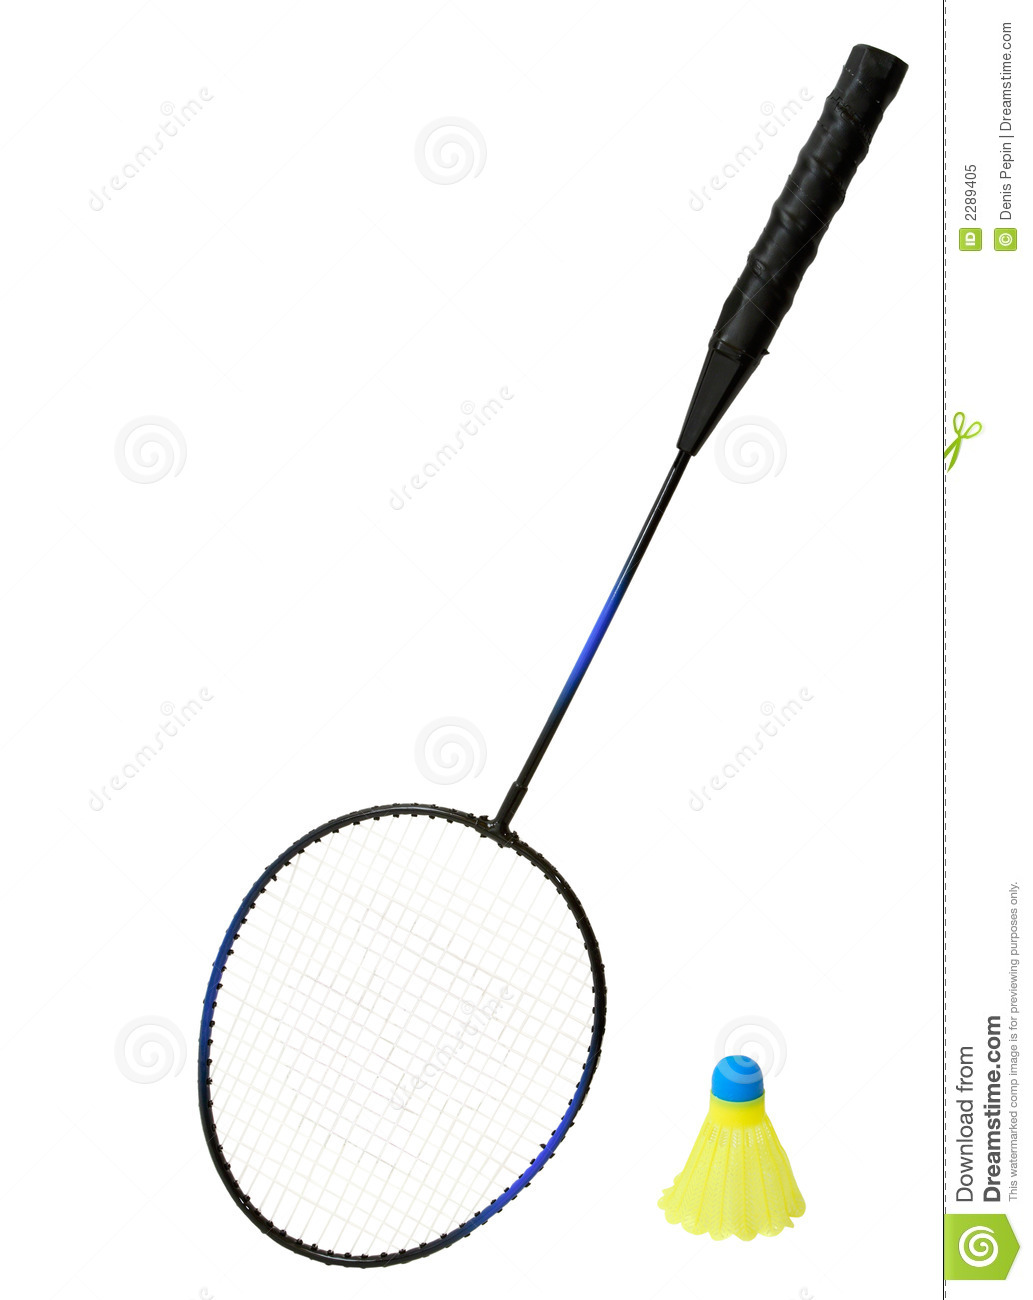 Badminton Racket And A Birstock Image